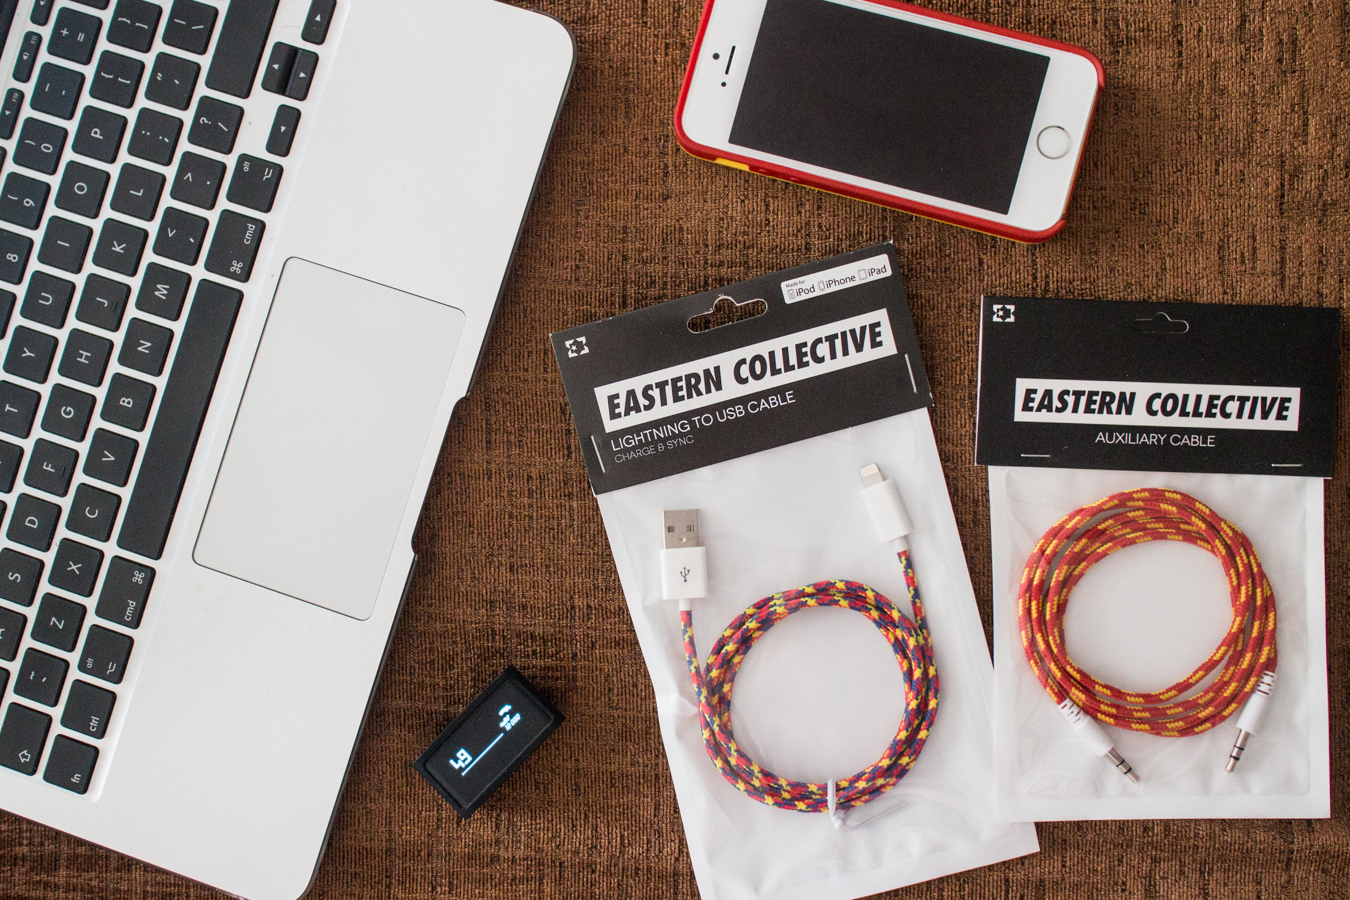 Cables by Eastern Collective